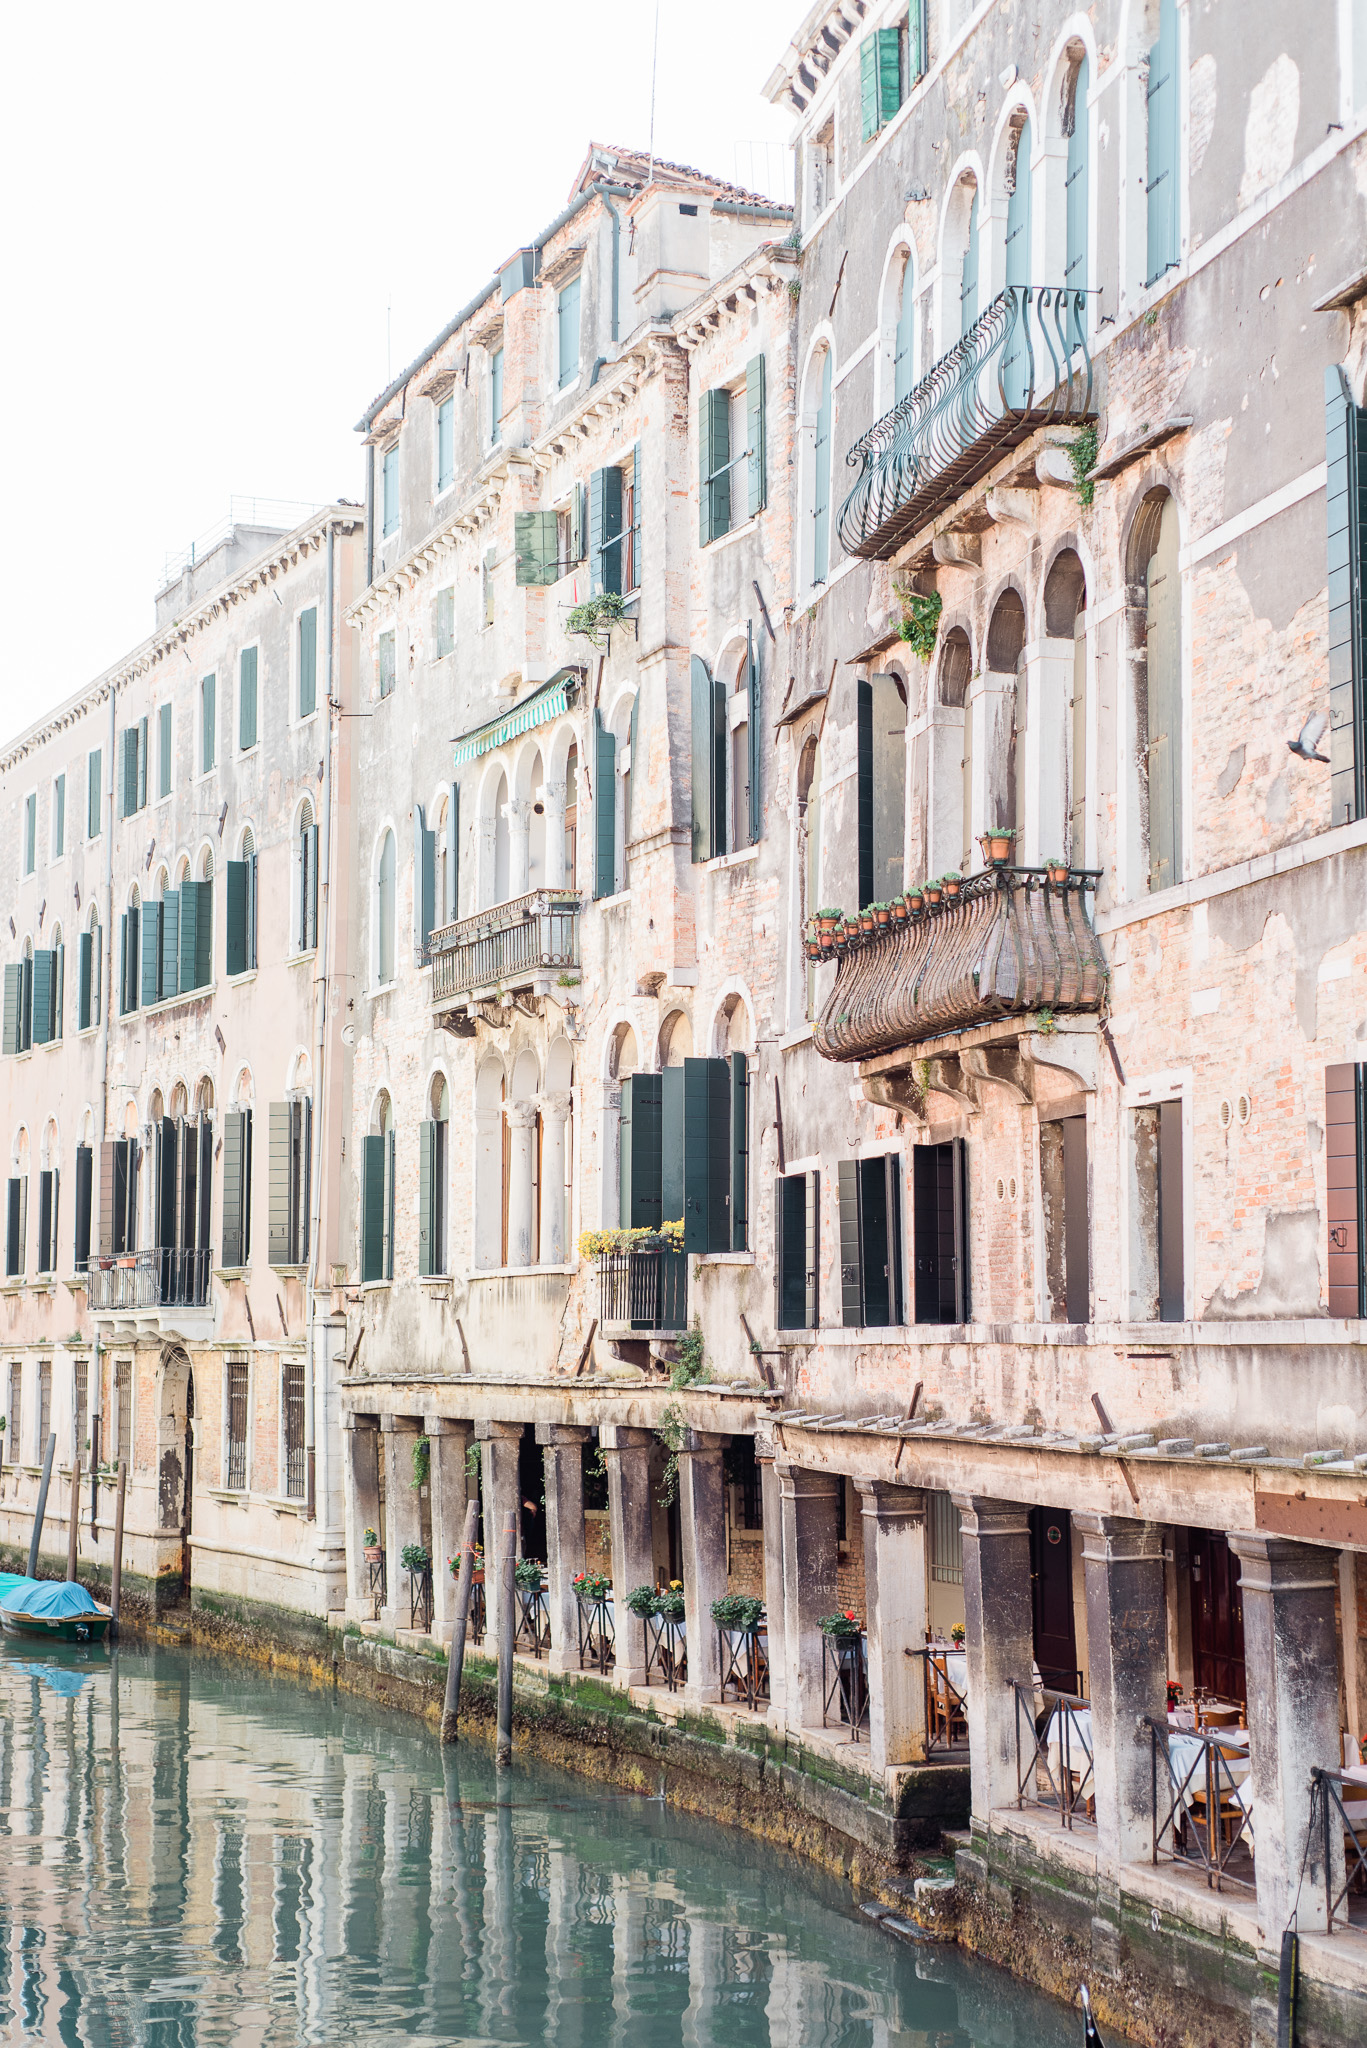 Canals in Venice | Two Weeks in Italy by Jenn Kavanagh Photography